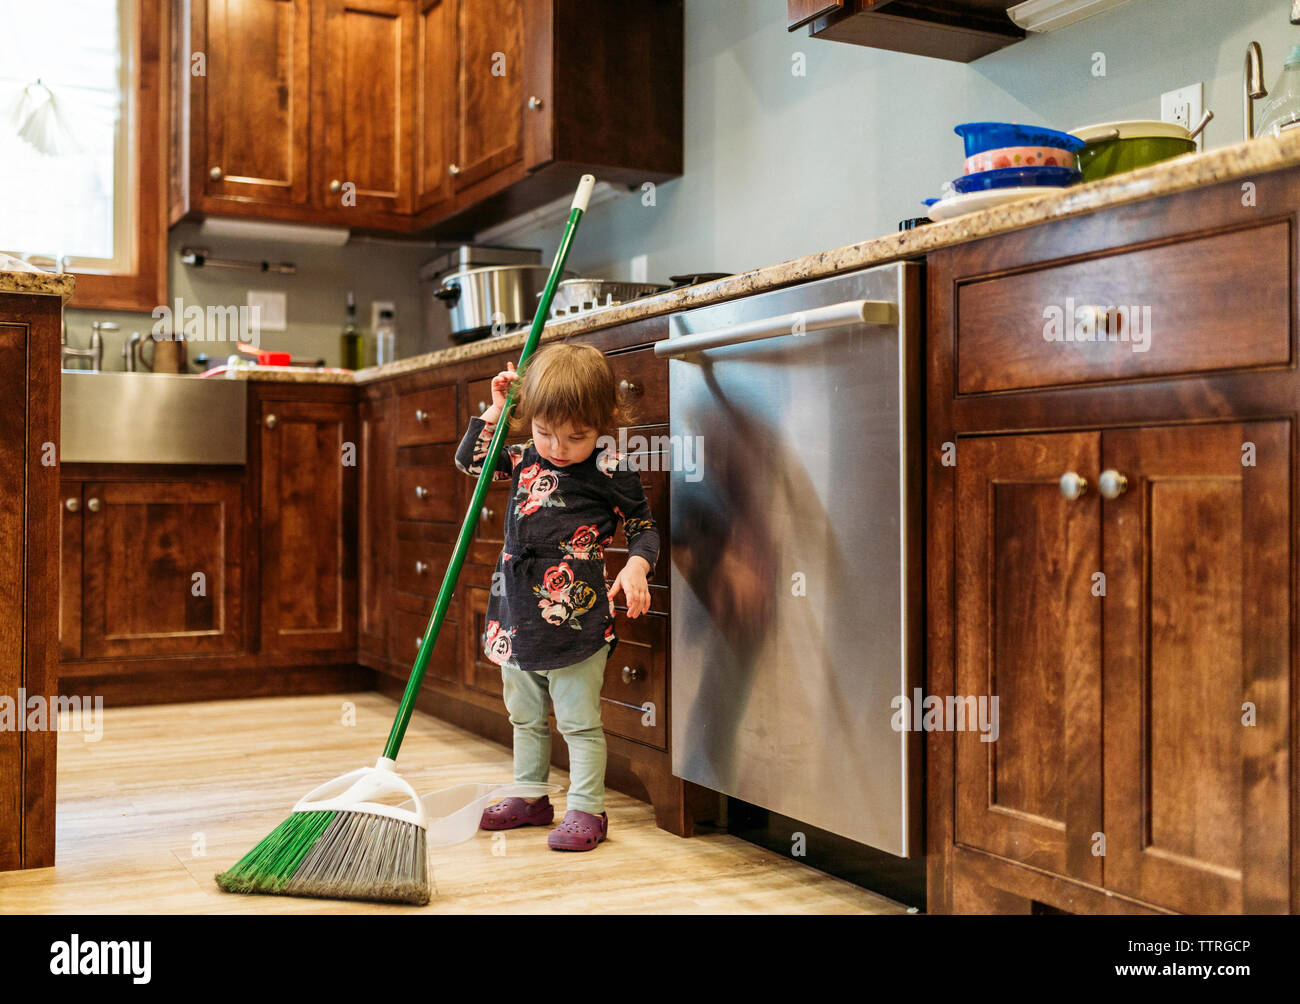 Girl cleaning kitchen with mop at home - Stock Image